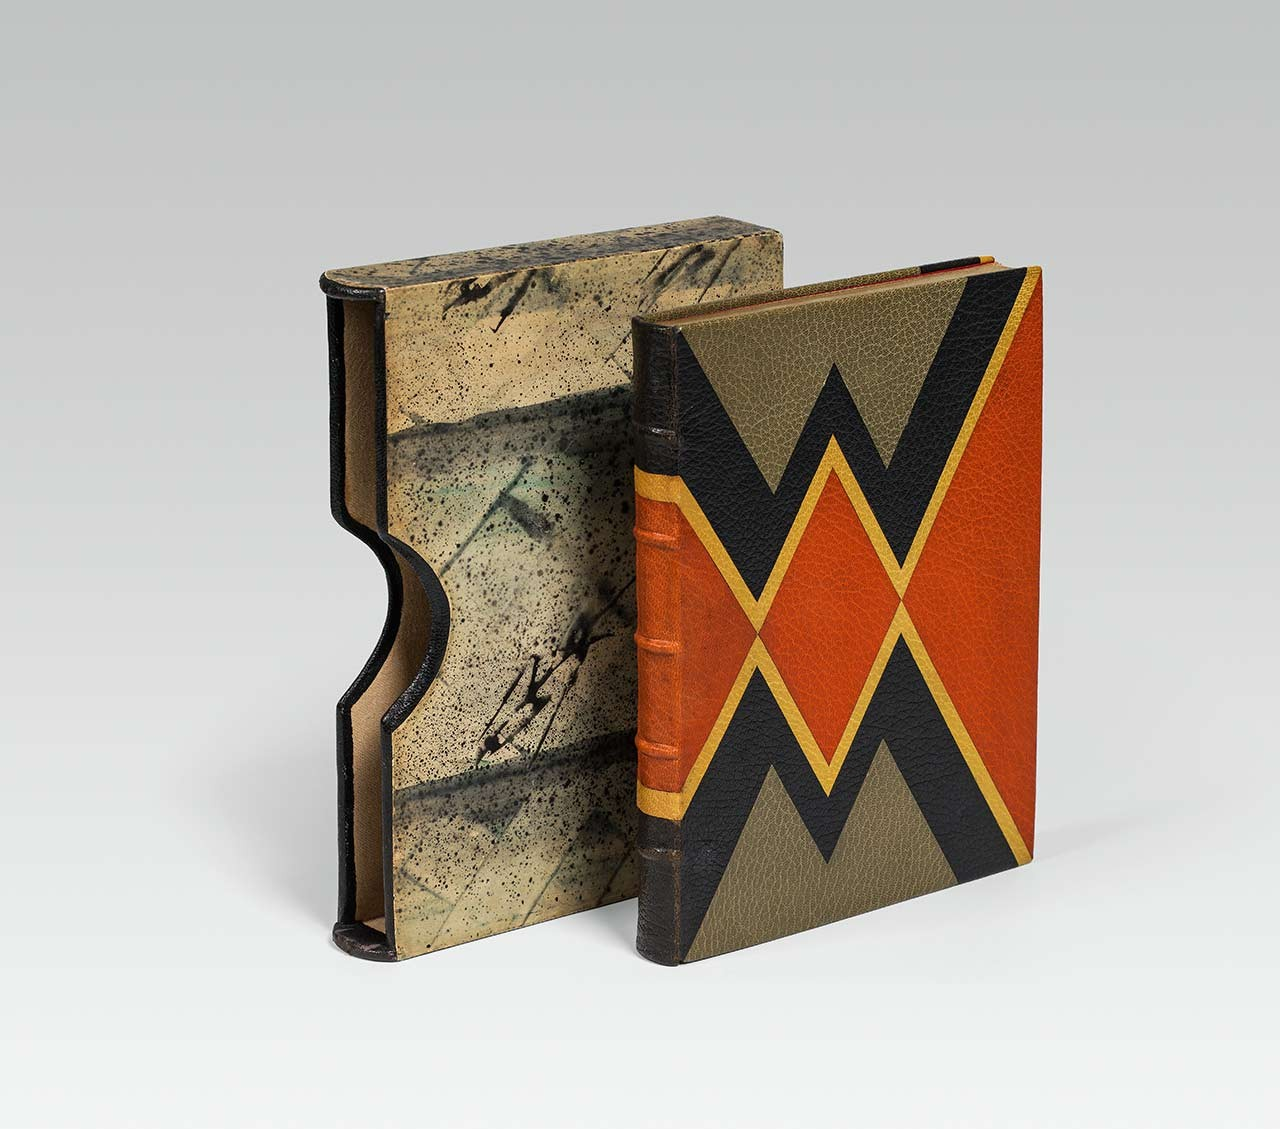 <BODY>Josef Hoffmann, Book Cover with Original Slipcase, ca. 1921</BODY>